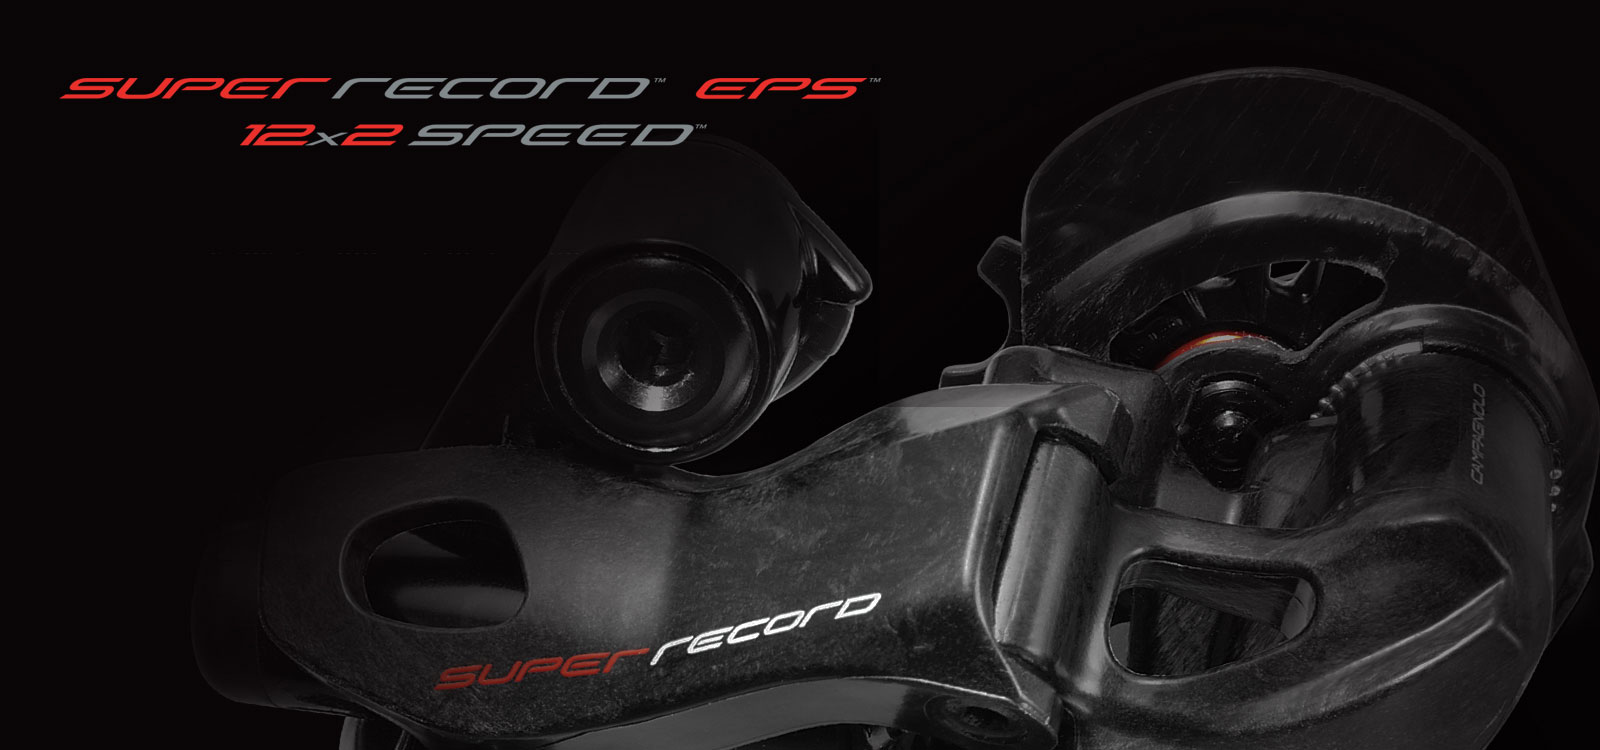 Campagnolo presents the new 12speed EPS groupsets